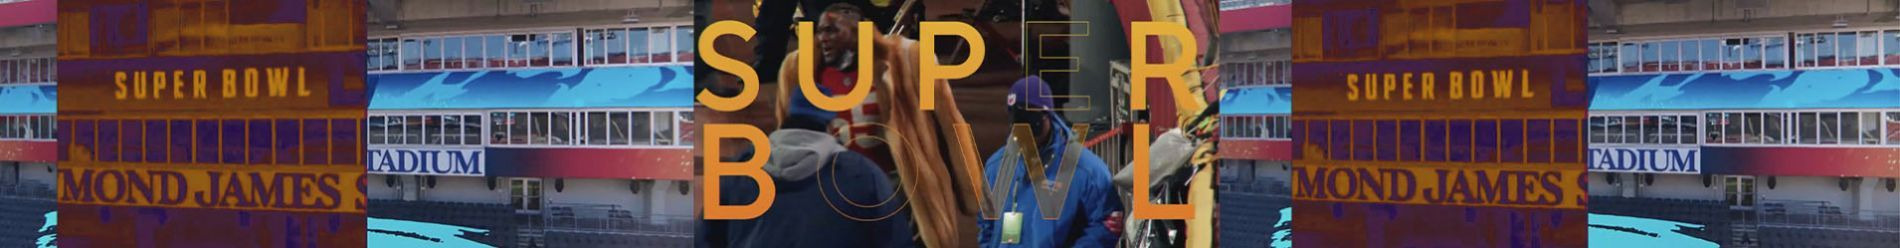 'Best One Yet' by Madison Mars (Ft. Little League) in Superbowl teaser on CBS pregame show Superbowl Today!